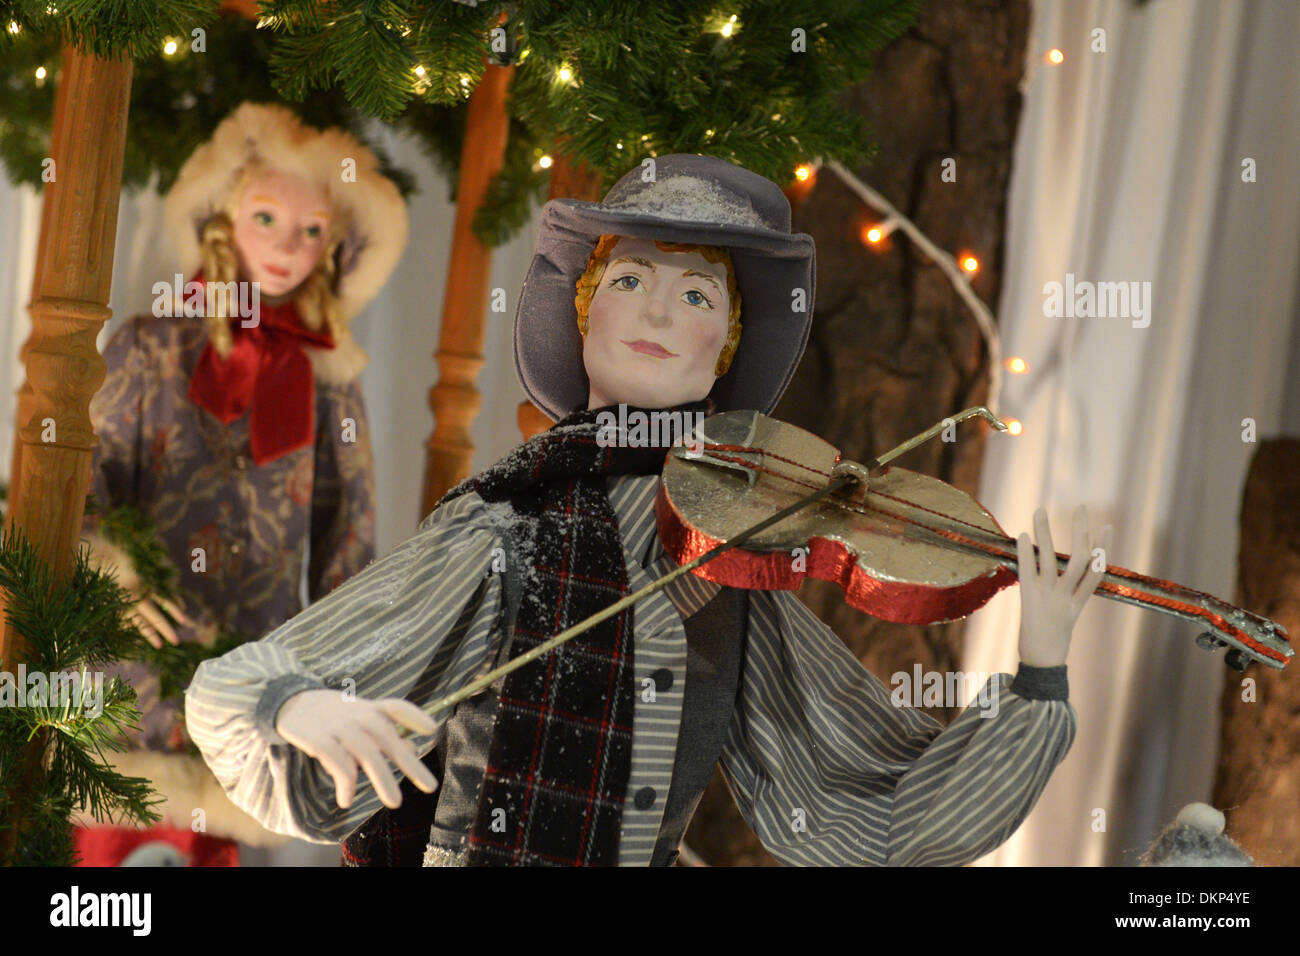 (131208) -- VANCOUVER, Dec. 8, 2013 (Xinhua) -- Photo taken on Dec. 8, 2013 shows Christmas window displays from Stock Photo